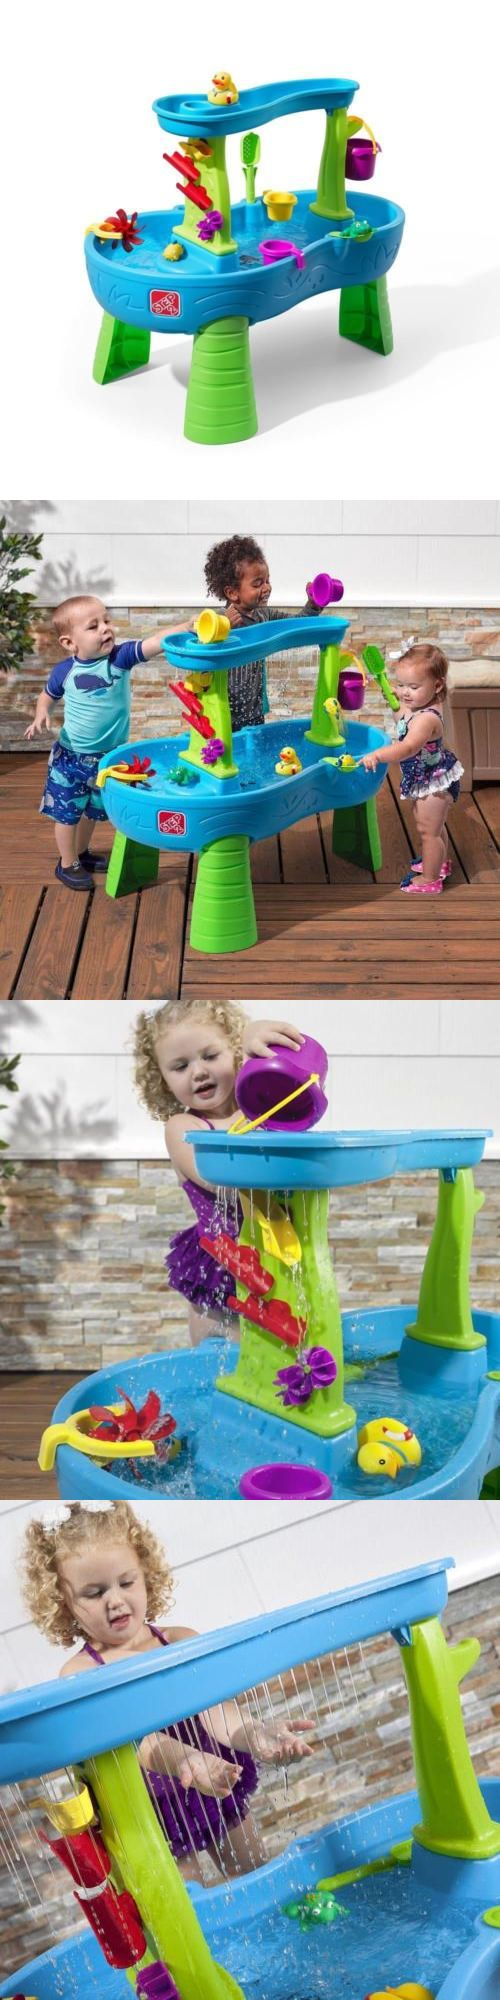 Step 2 52344: New Rain Showers Splash Pond Water Table Playset -> BUY IT NOW ONLY: $66.98 on eBay!